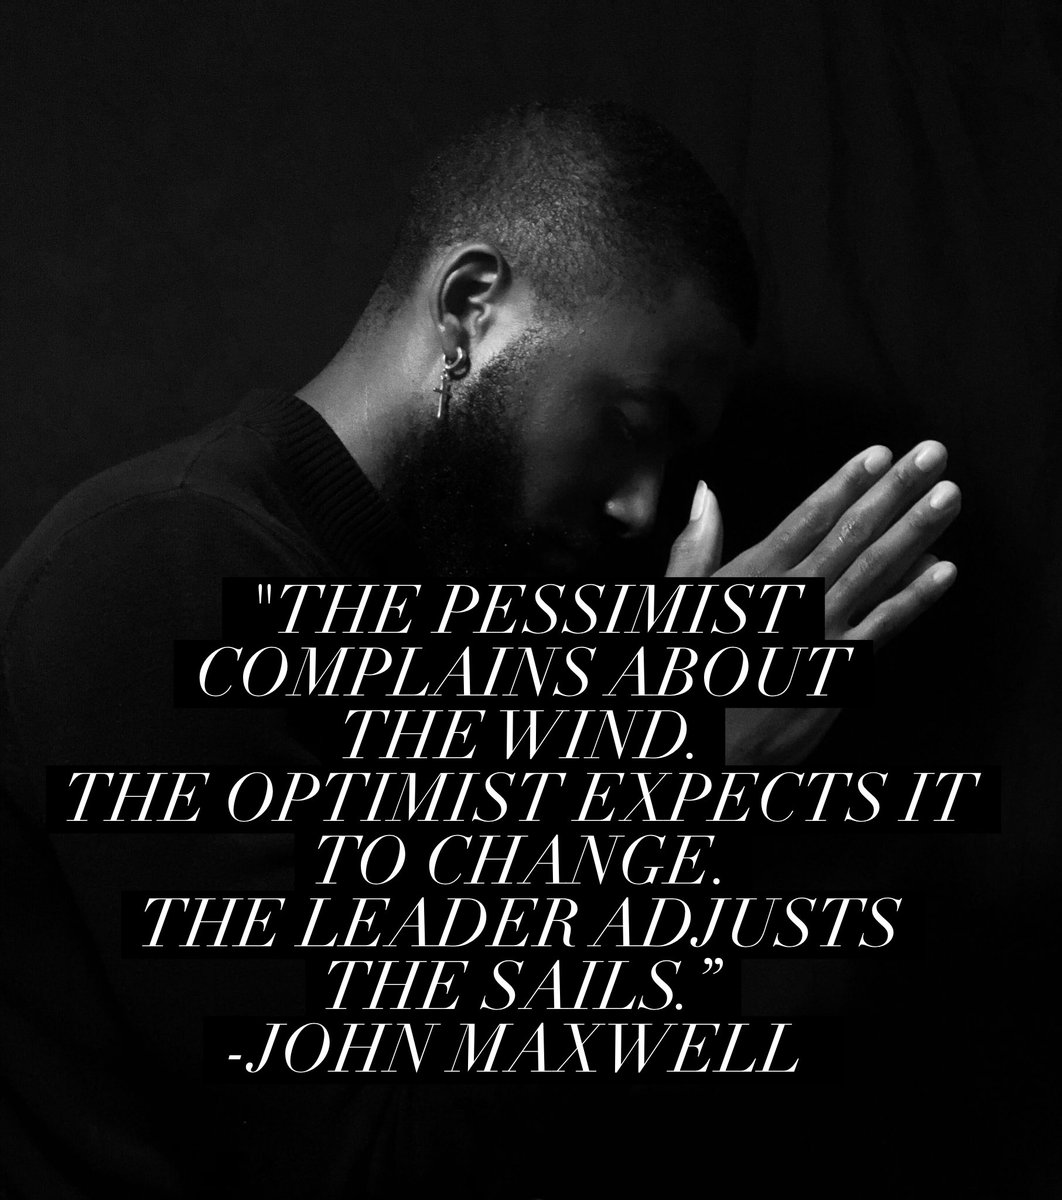 The pessimist complains about the wind. The optimist expects it to change. The leader adjusts the sails. ~John Maxwell #SaturdayMorning #RiseAndGrind #BePositive #Leadership #Quote